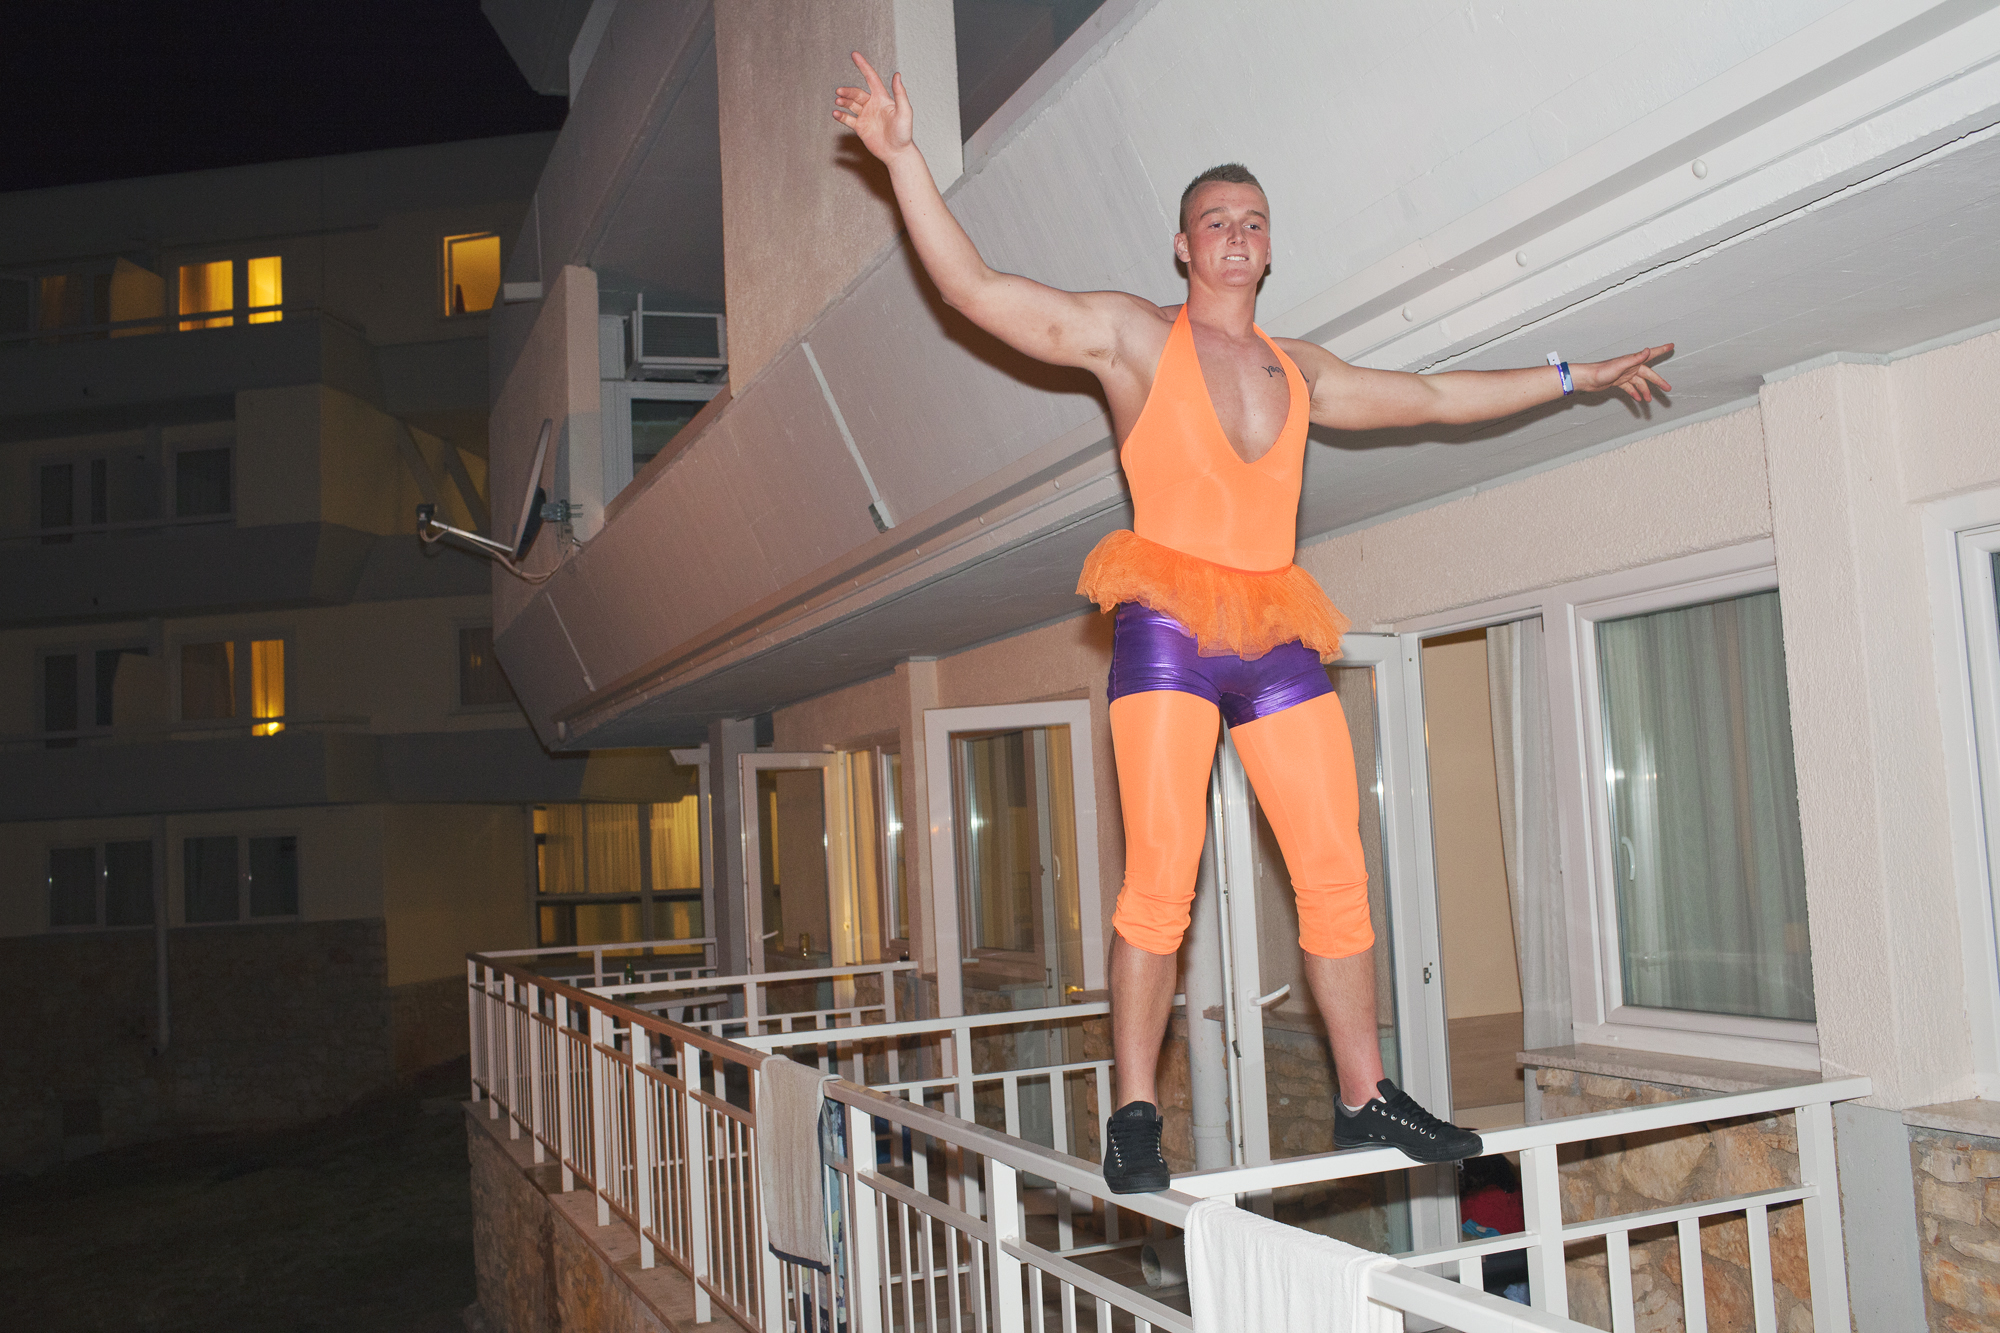 A British University Student balances on a balcony while on the inaugural ILOVETOUR to the town of Porec in Croatia. The tour organizes various sports and themed events and club nights.